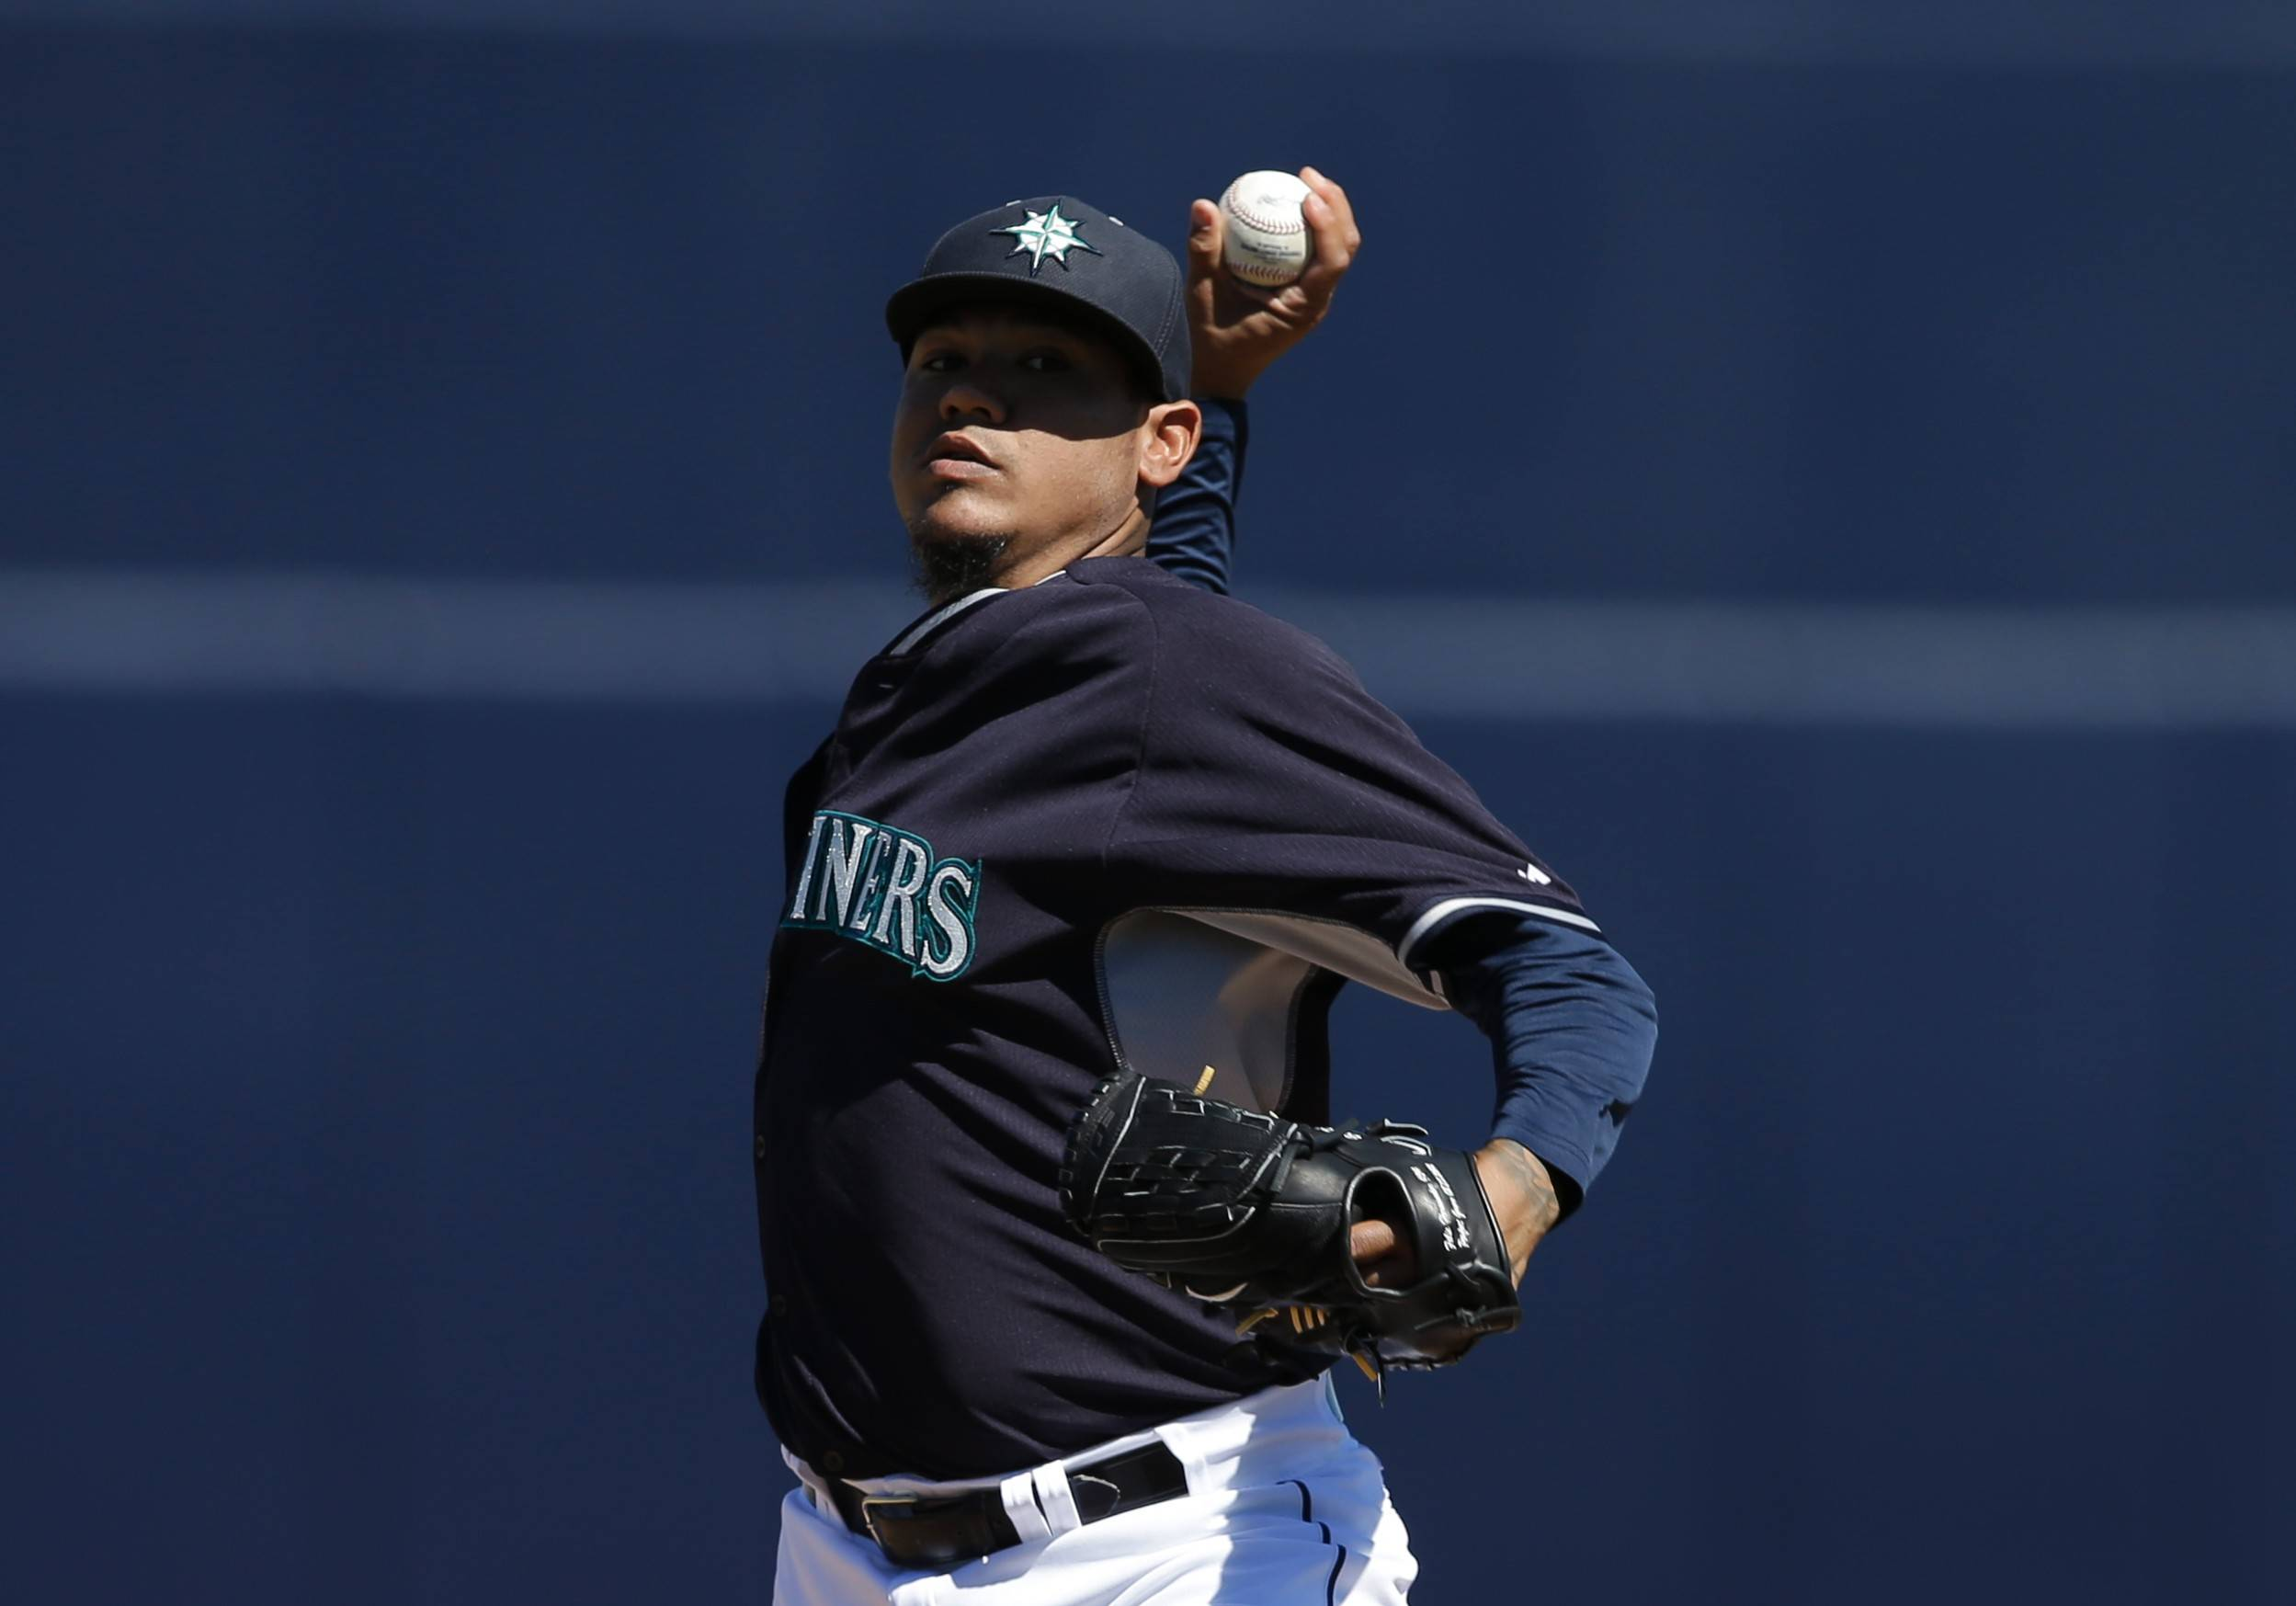 When Seattle Mariners pitcher Felix Hernandez won the American League Cy Young Award in 2010 with just 13 victories, it was a watershed moment for modern baseball analytics.